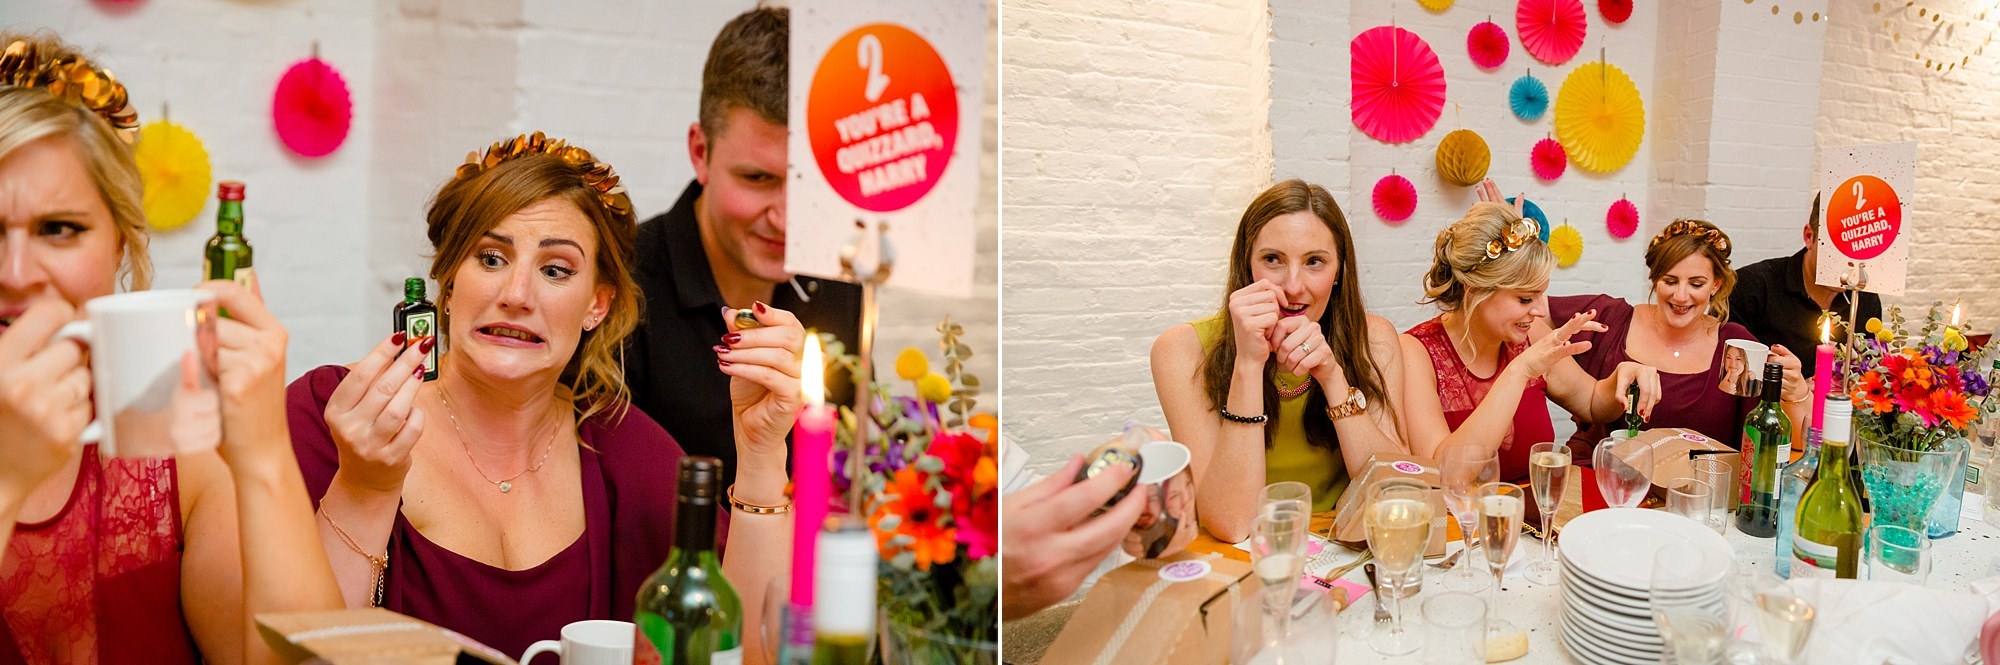 Fun London Wedding guests pour liquor shots into mugs